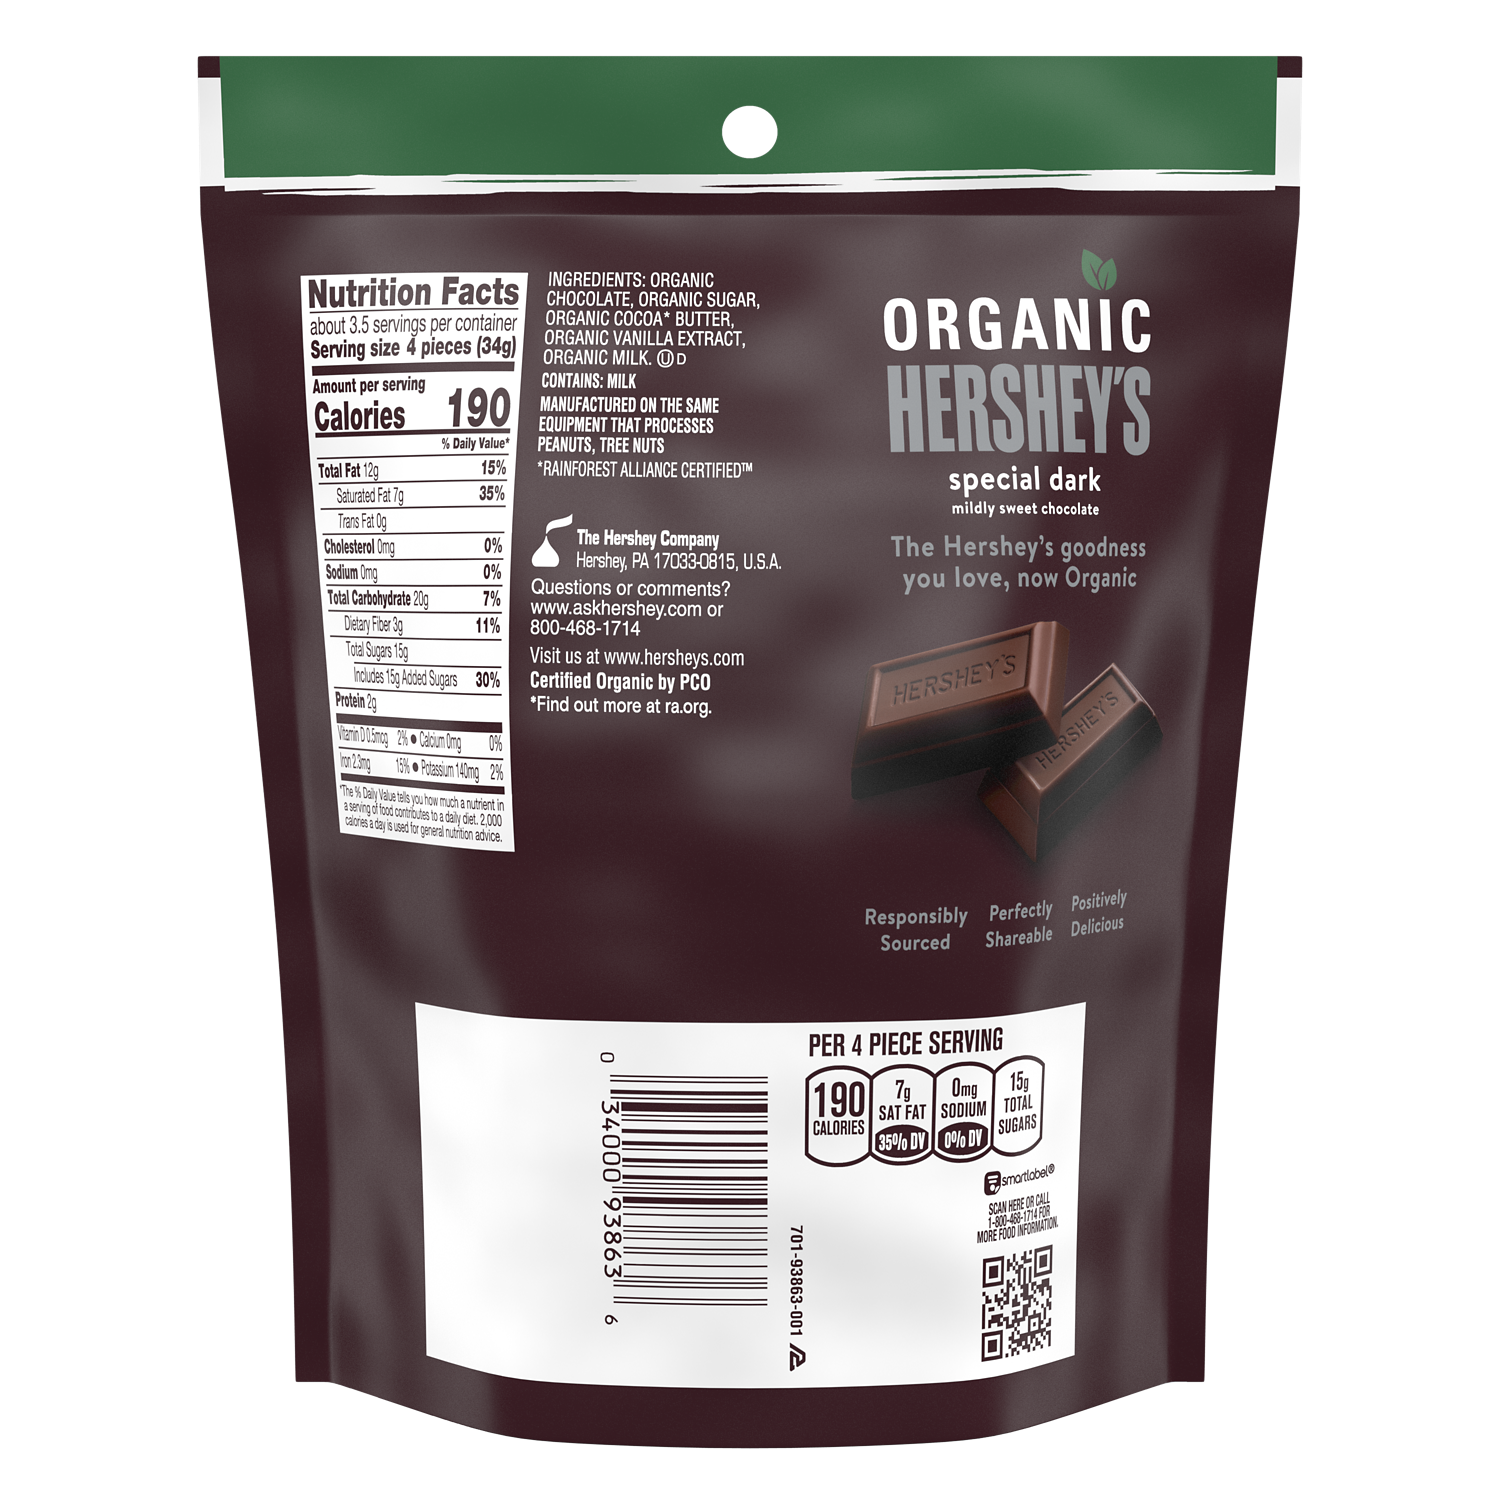 HERSHEY'S SPECIAL DARK Organic Miniatures Chocolate Candy Bars, 4.2 oz bag - Back of Package